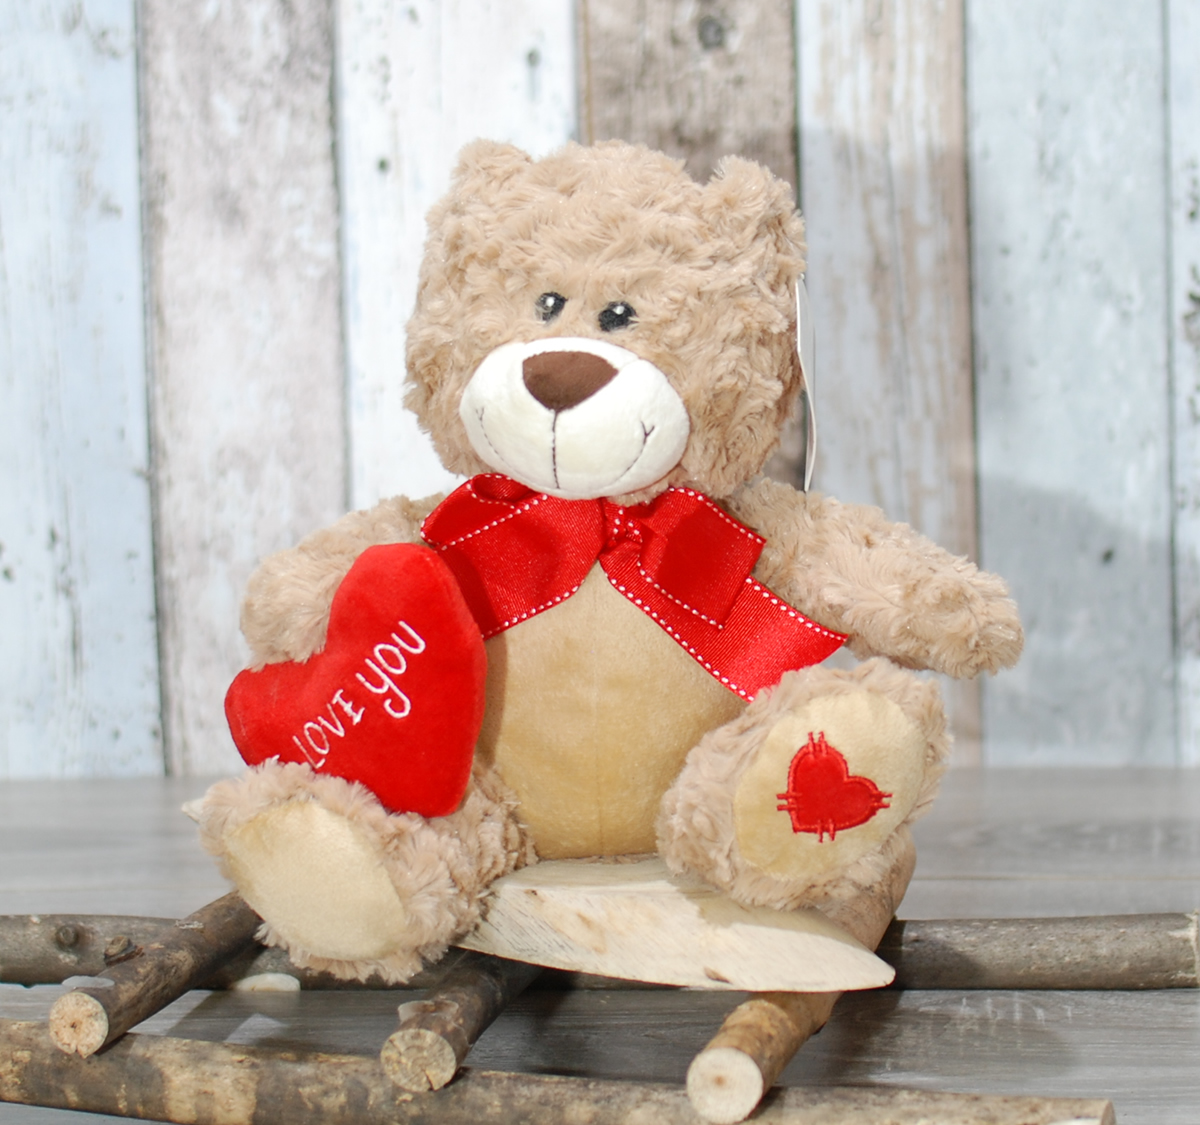 Love teddy bear medium – 25cm